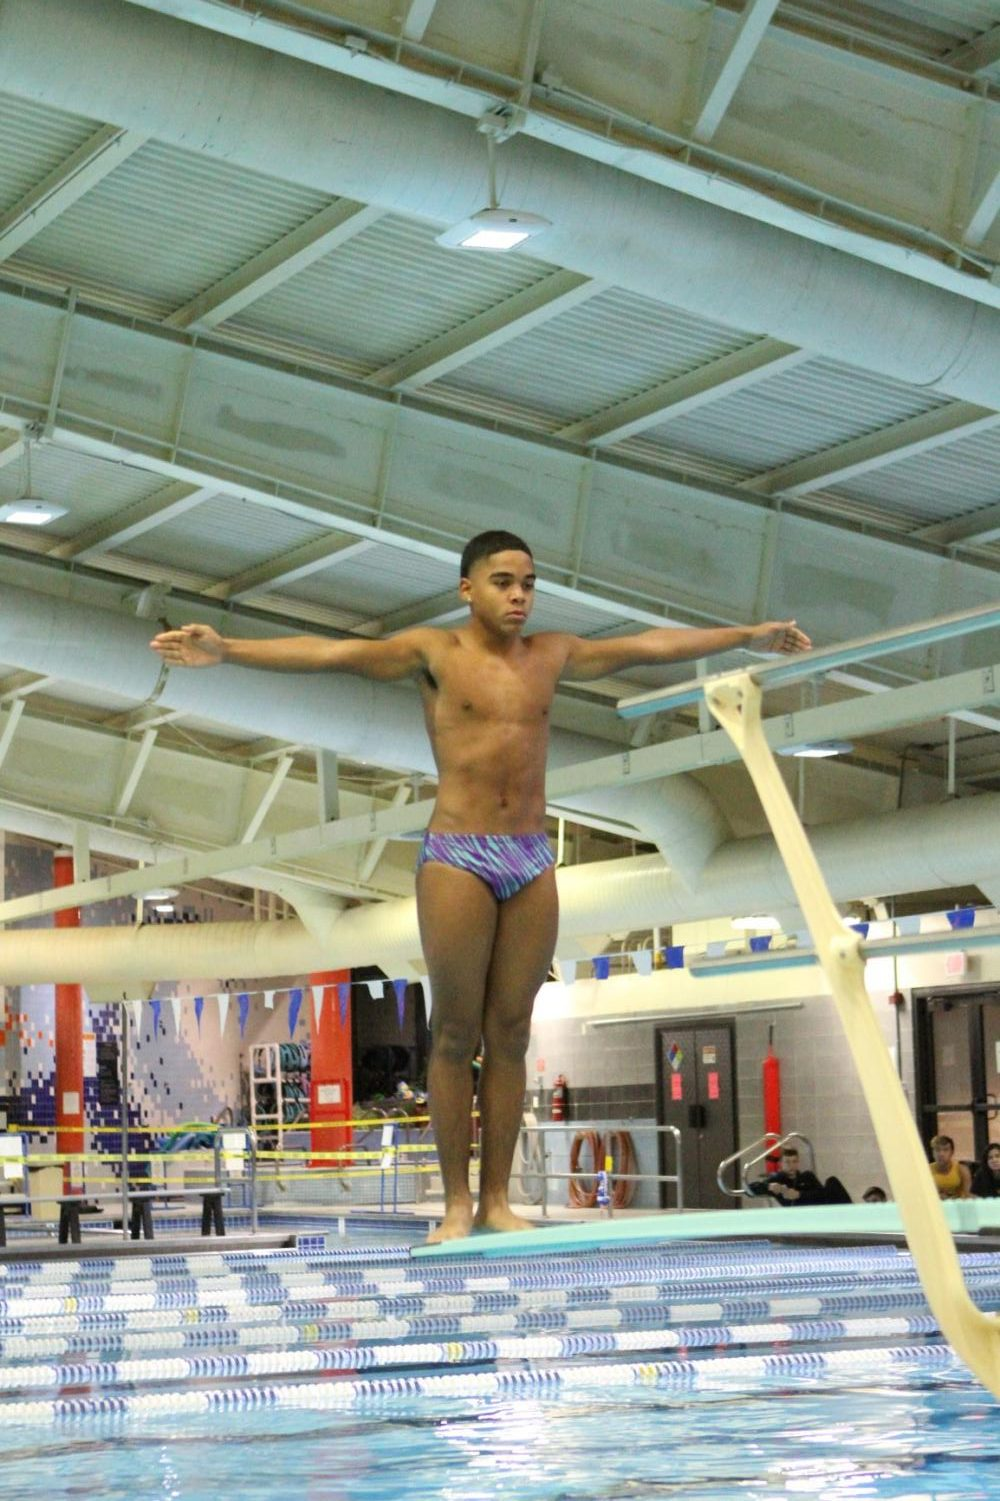 Sophomore Ari Snow, who placed first in Virginia at states, prepares a dive.